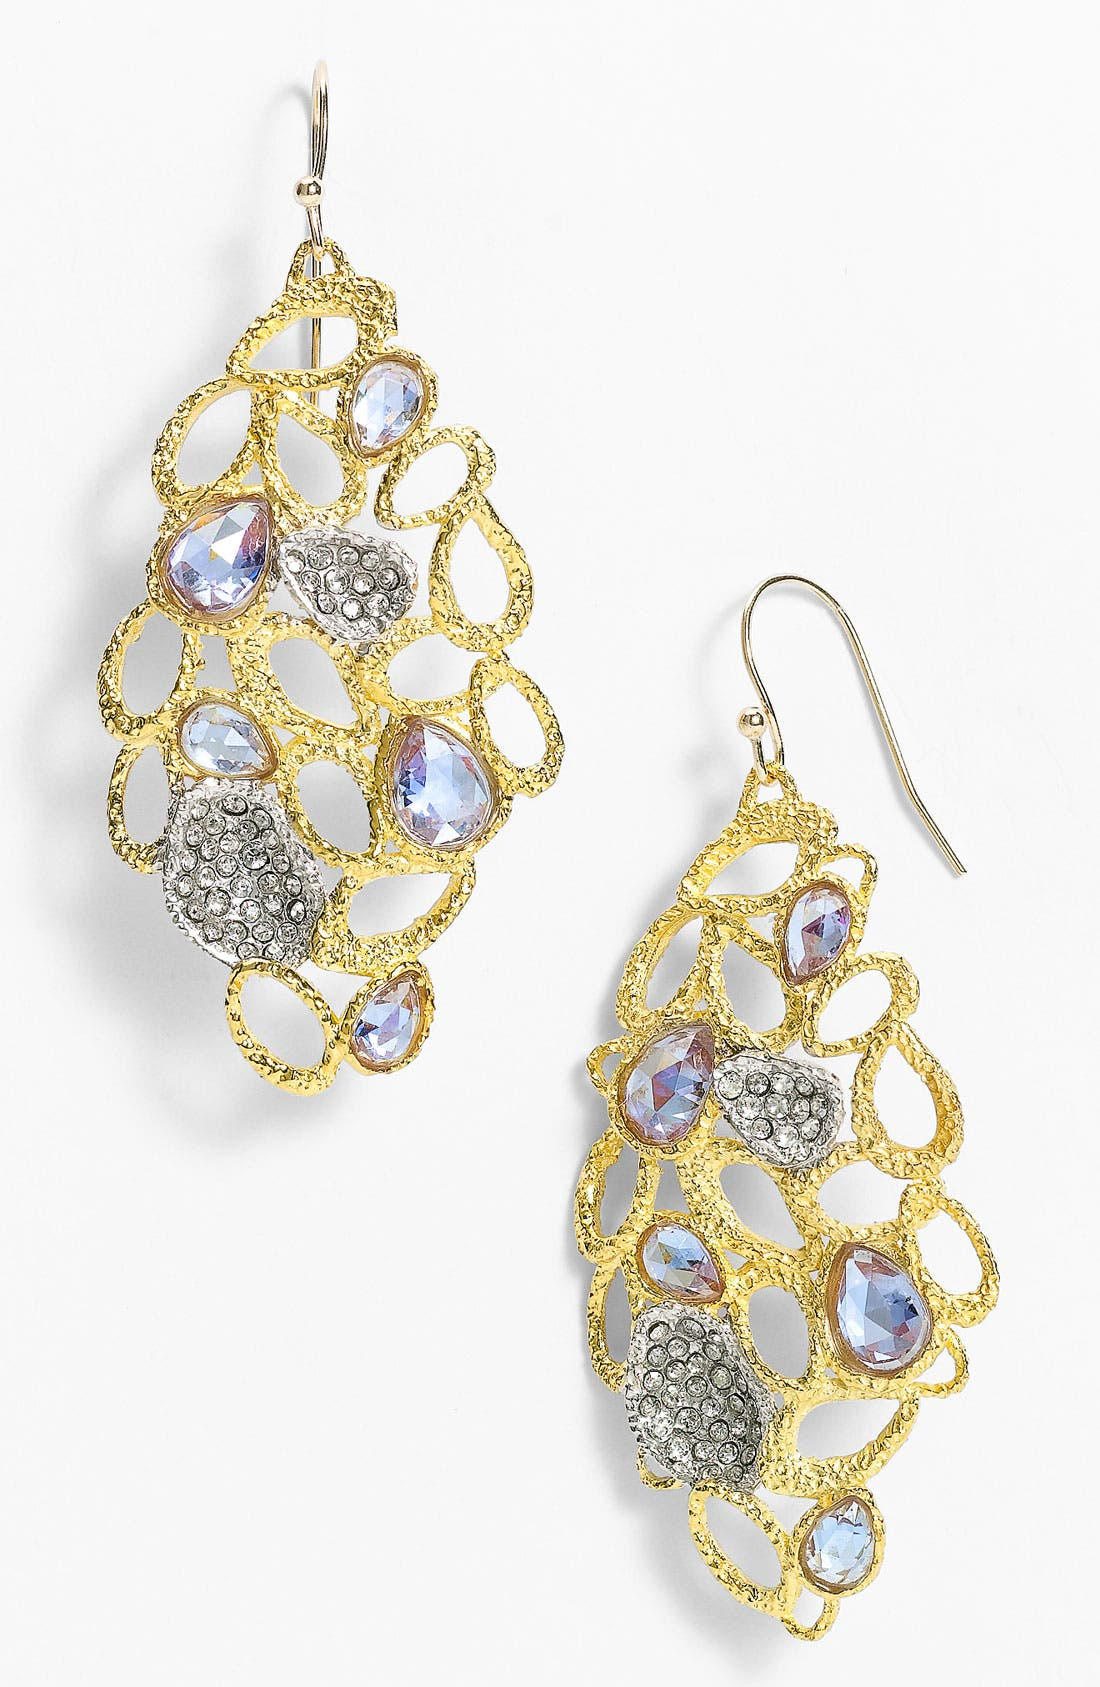 Main Image - Alexis Bittar 'Elements' Pavé Accent Drop Earrings (Nordstrom Exclusive)